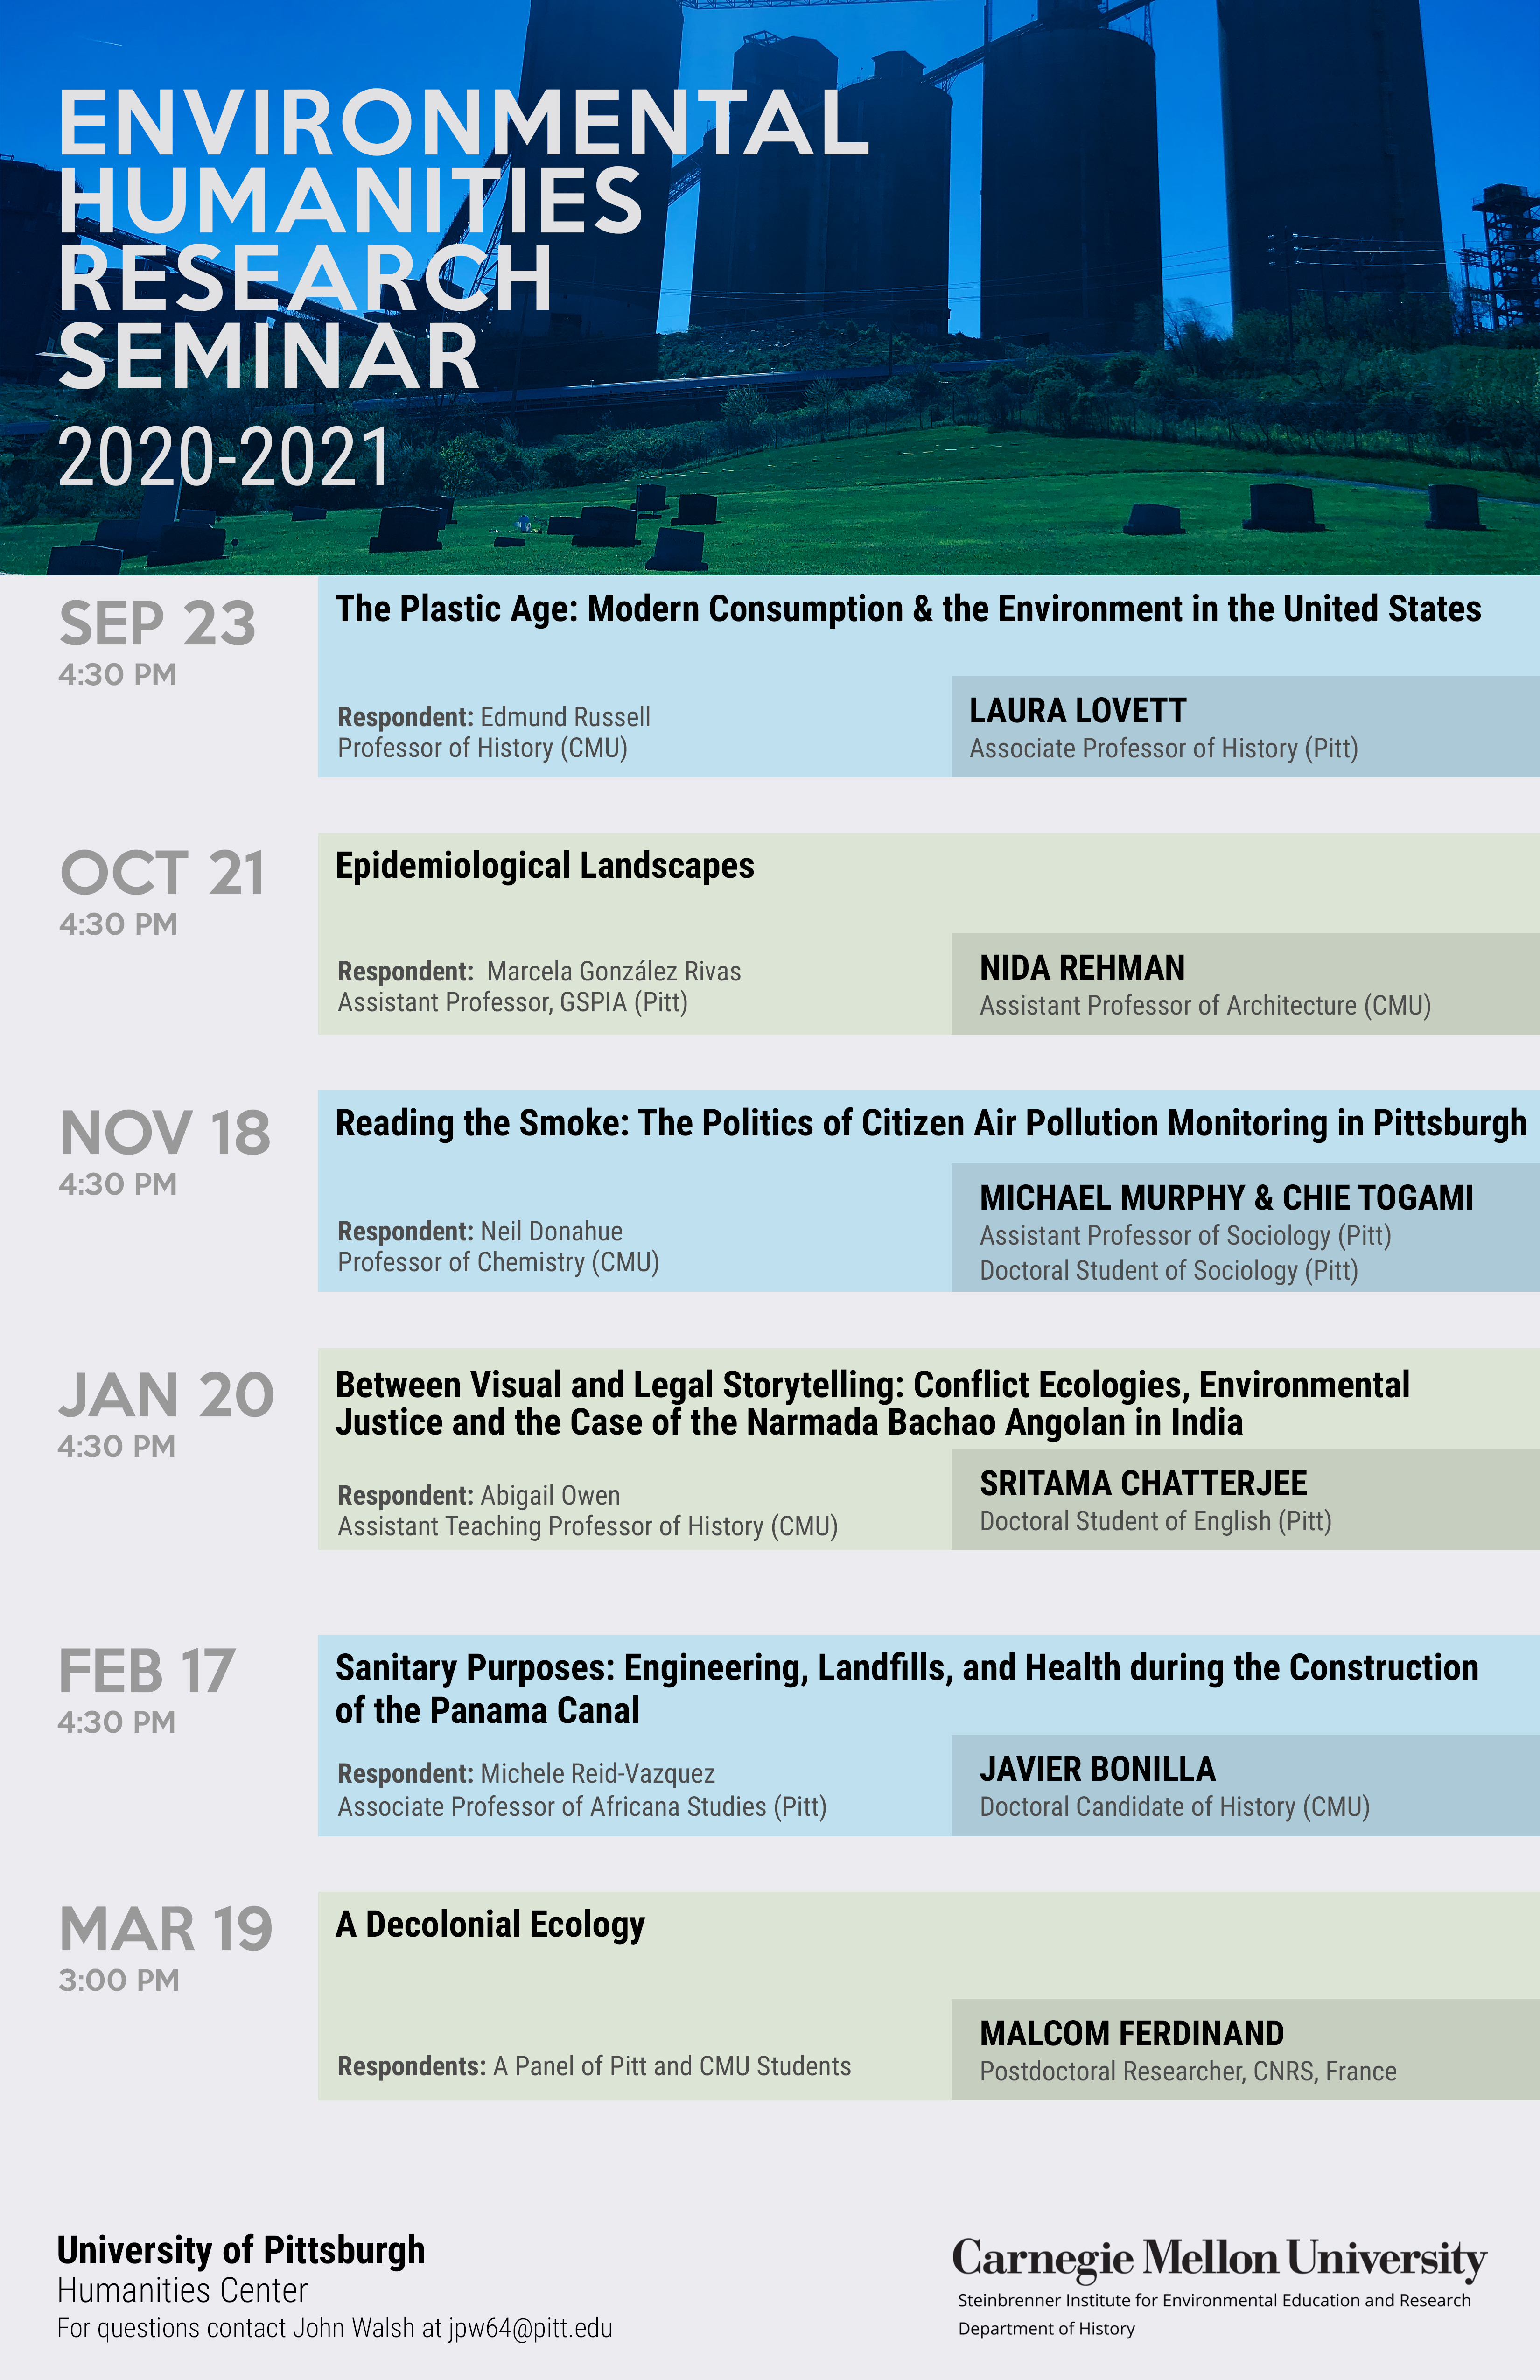 Flyer for Environmental Humanities Research Seminar